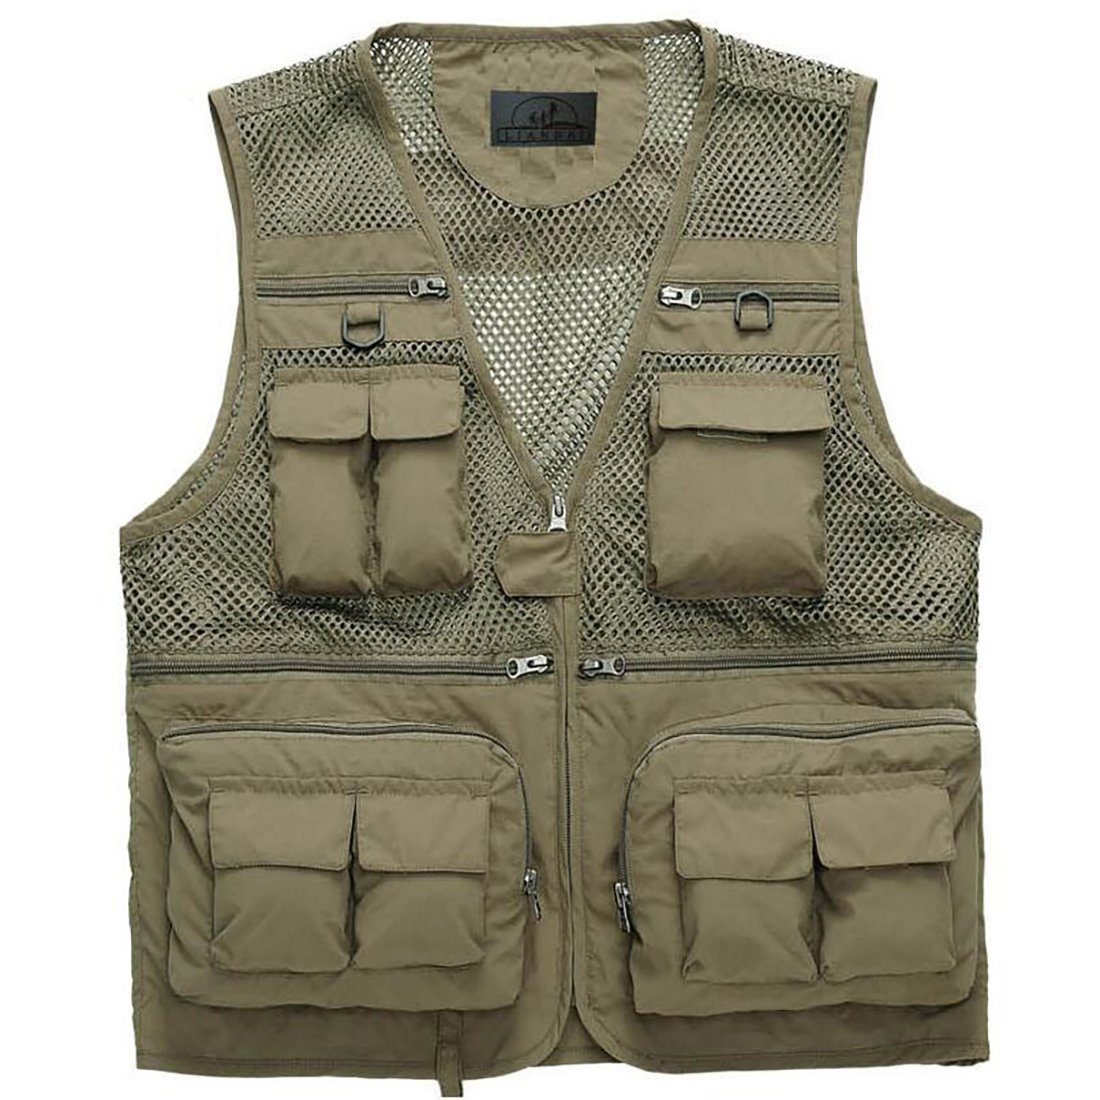 New Quick Dry Vest Mens Outdoor Photography Hiking Trekking Climb Fishing Sports Clothing Breathable More Pockets Vest